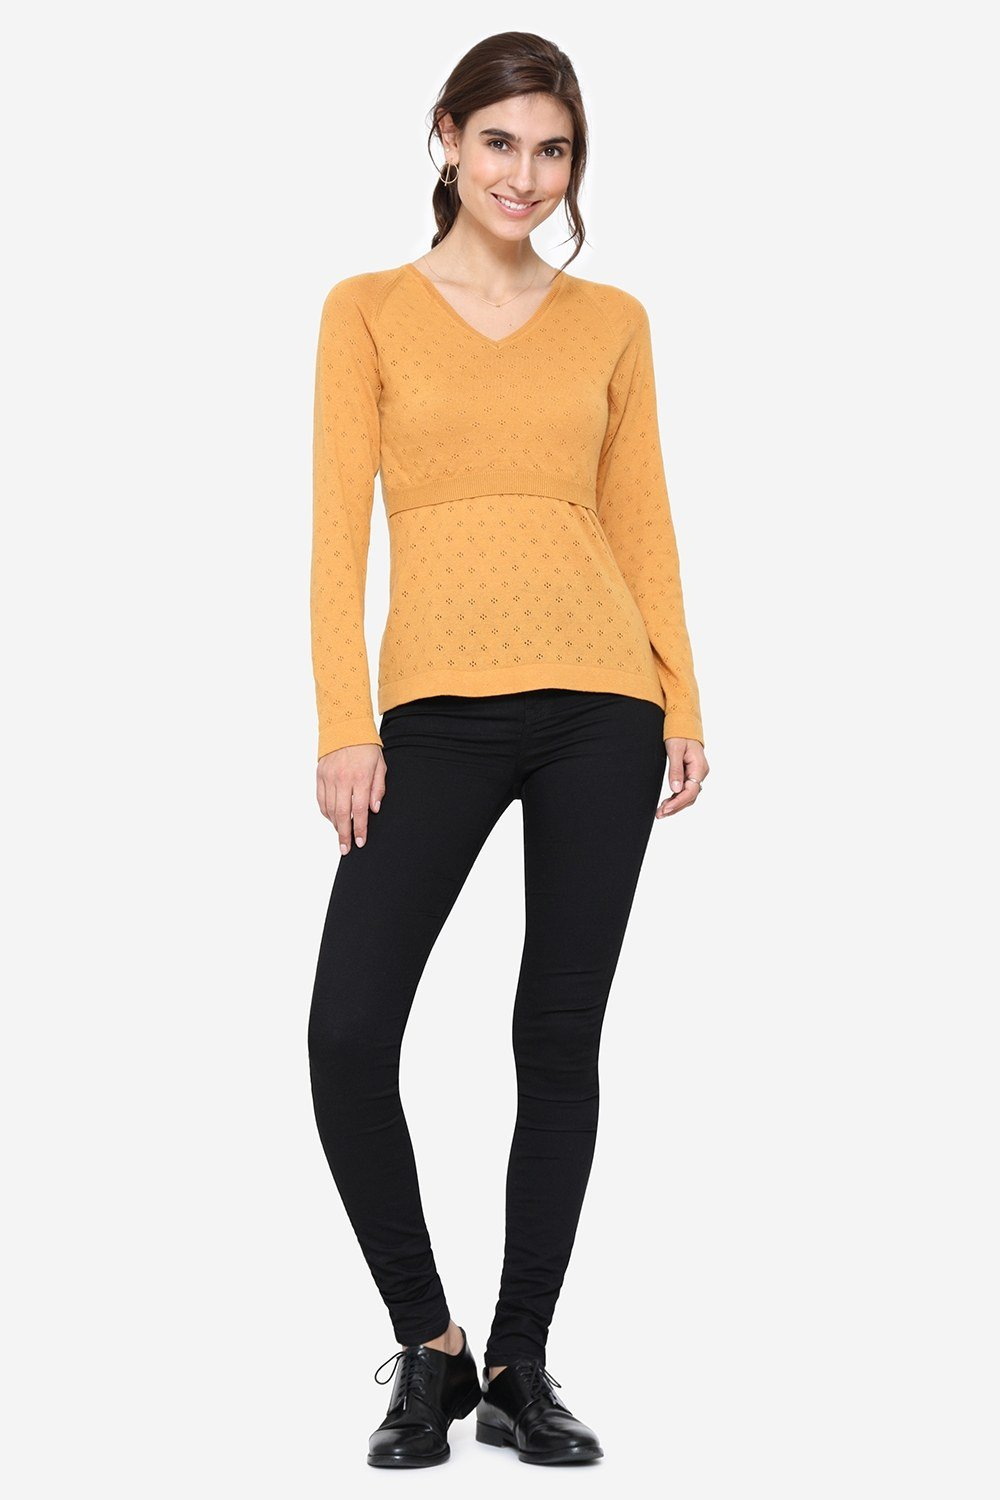 YeYellow V-neck nursing jumper in organic cotton, full figur